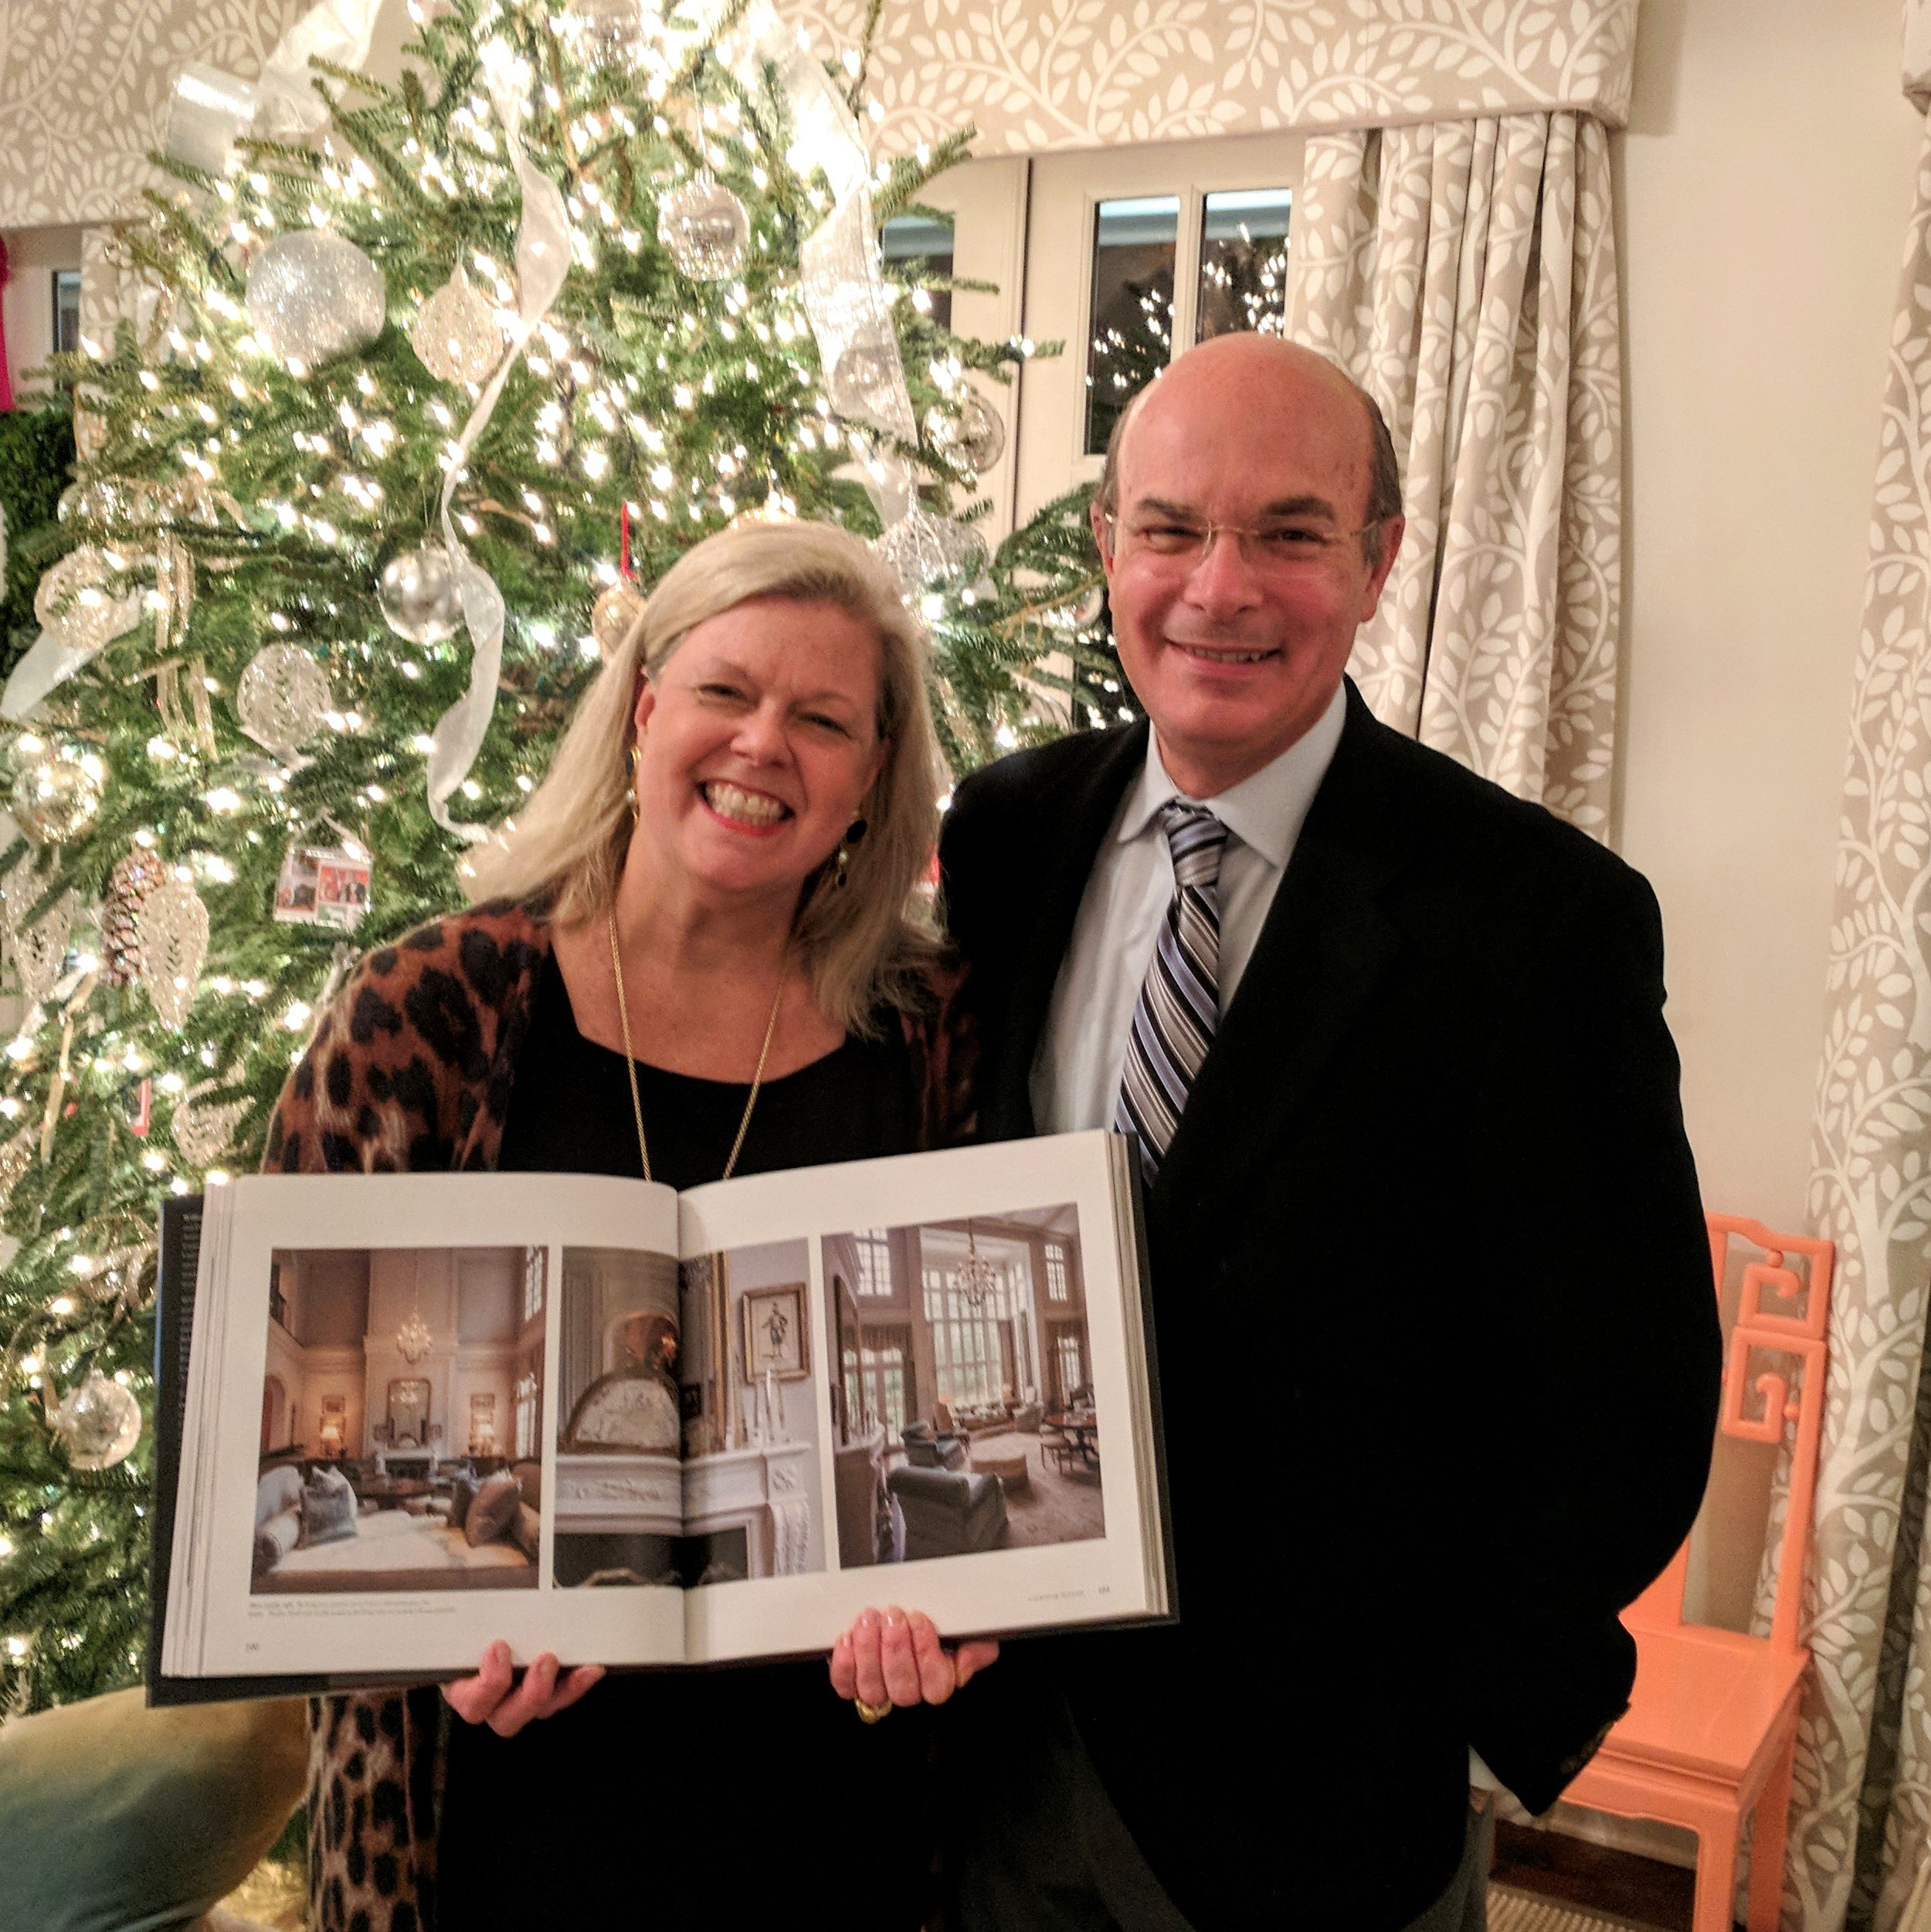 Patricia McLean of McLean Interiors with William T. Baker